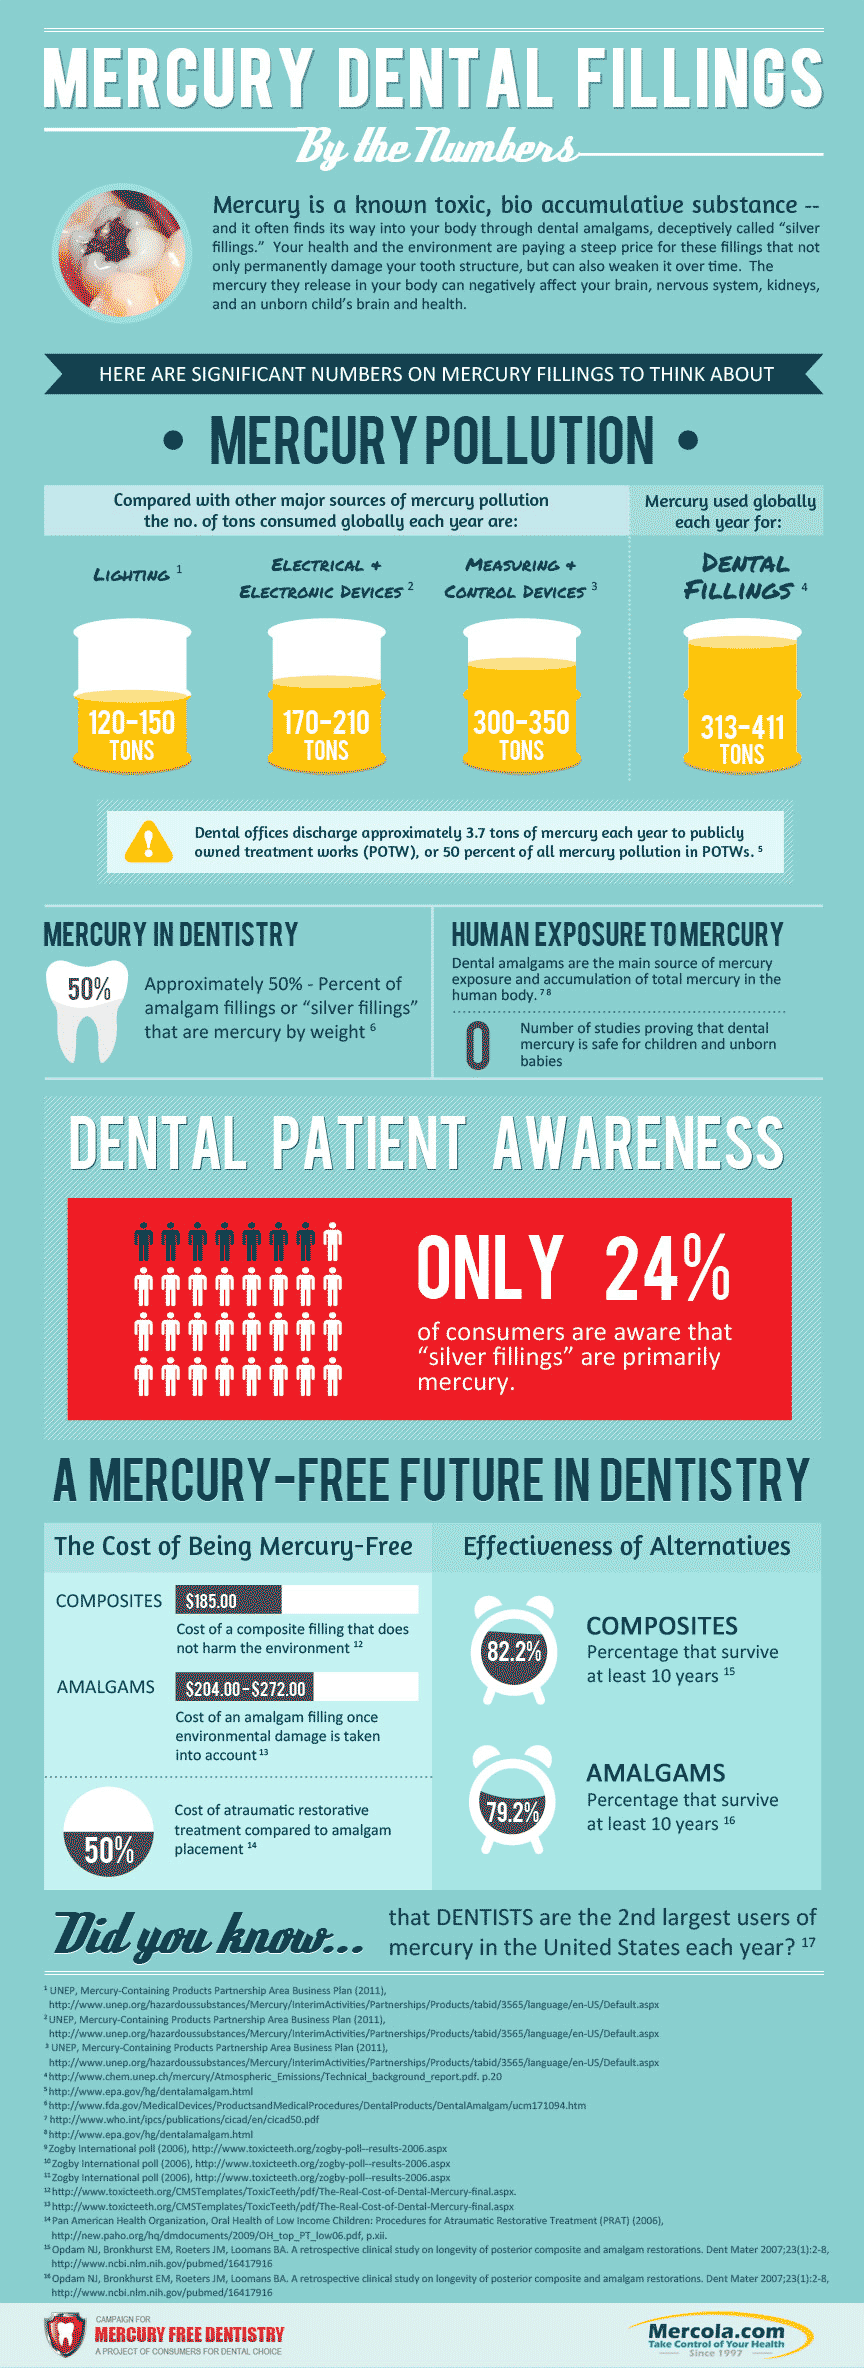 The Dangers of Mercury Fillings ~ https://healthpositiveinfo.com/mercury-fillings.html